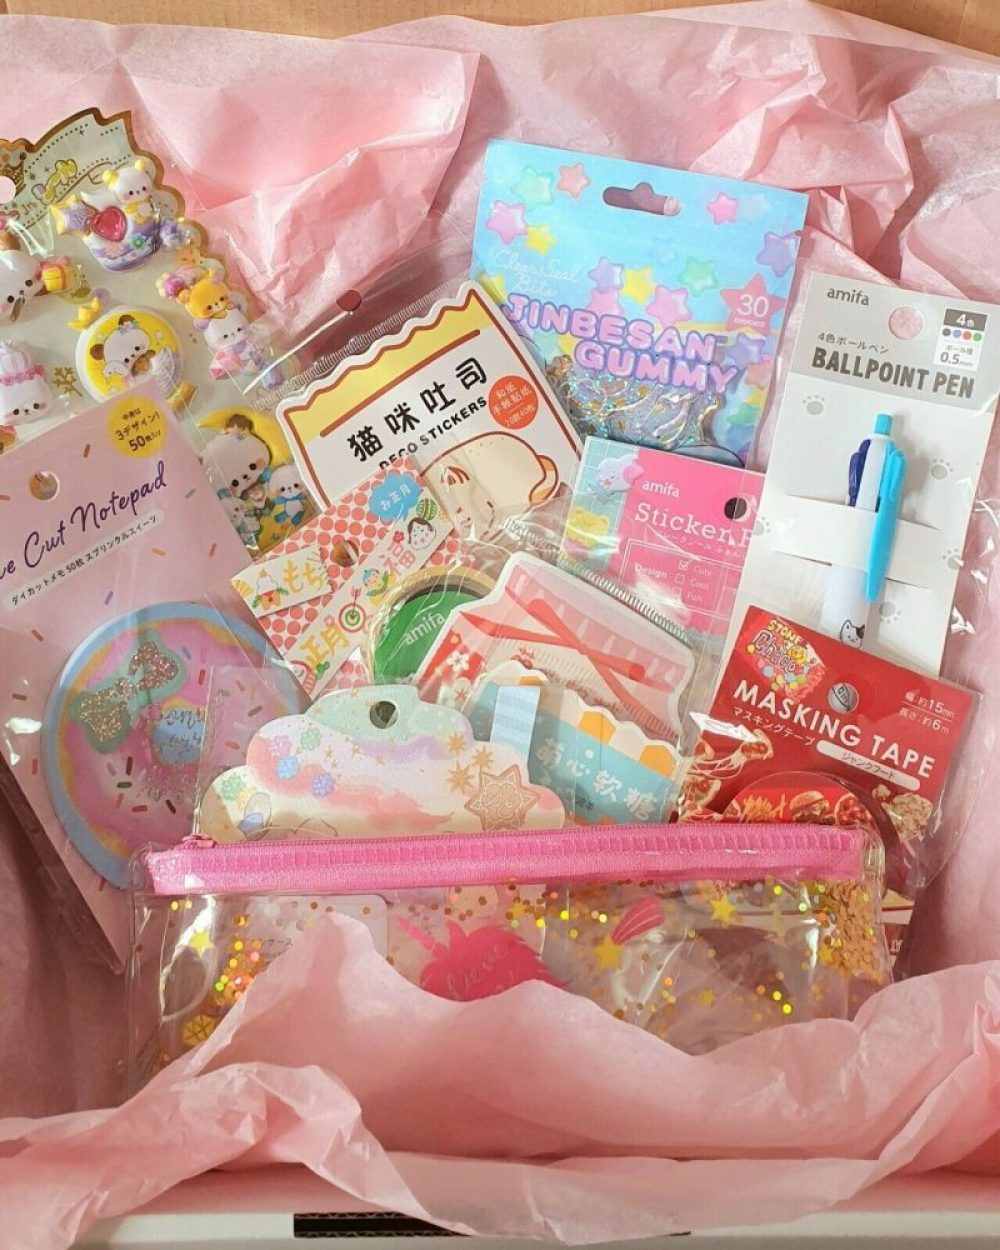 mystery cute stationery gift surprise set